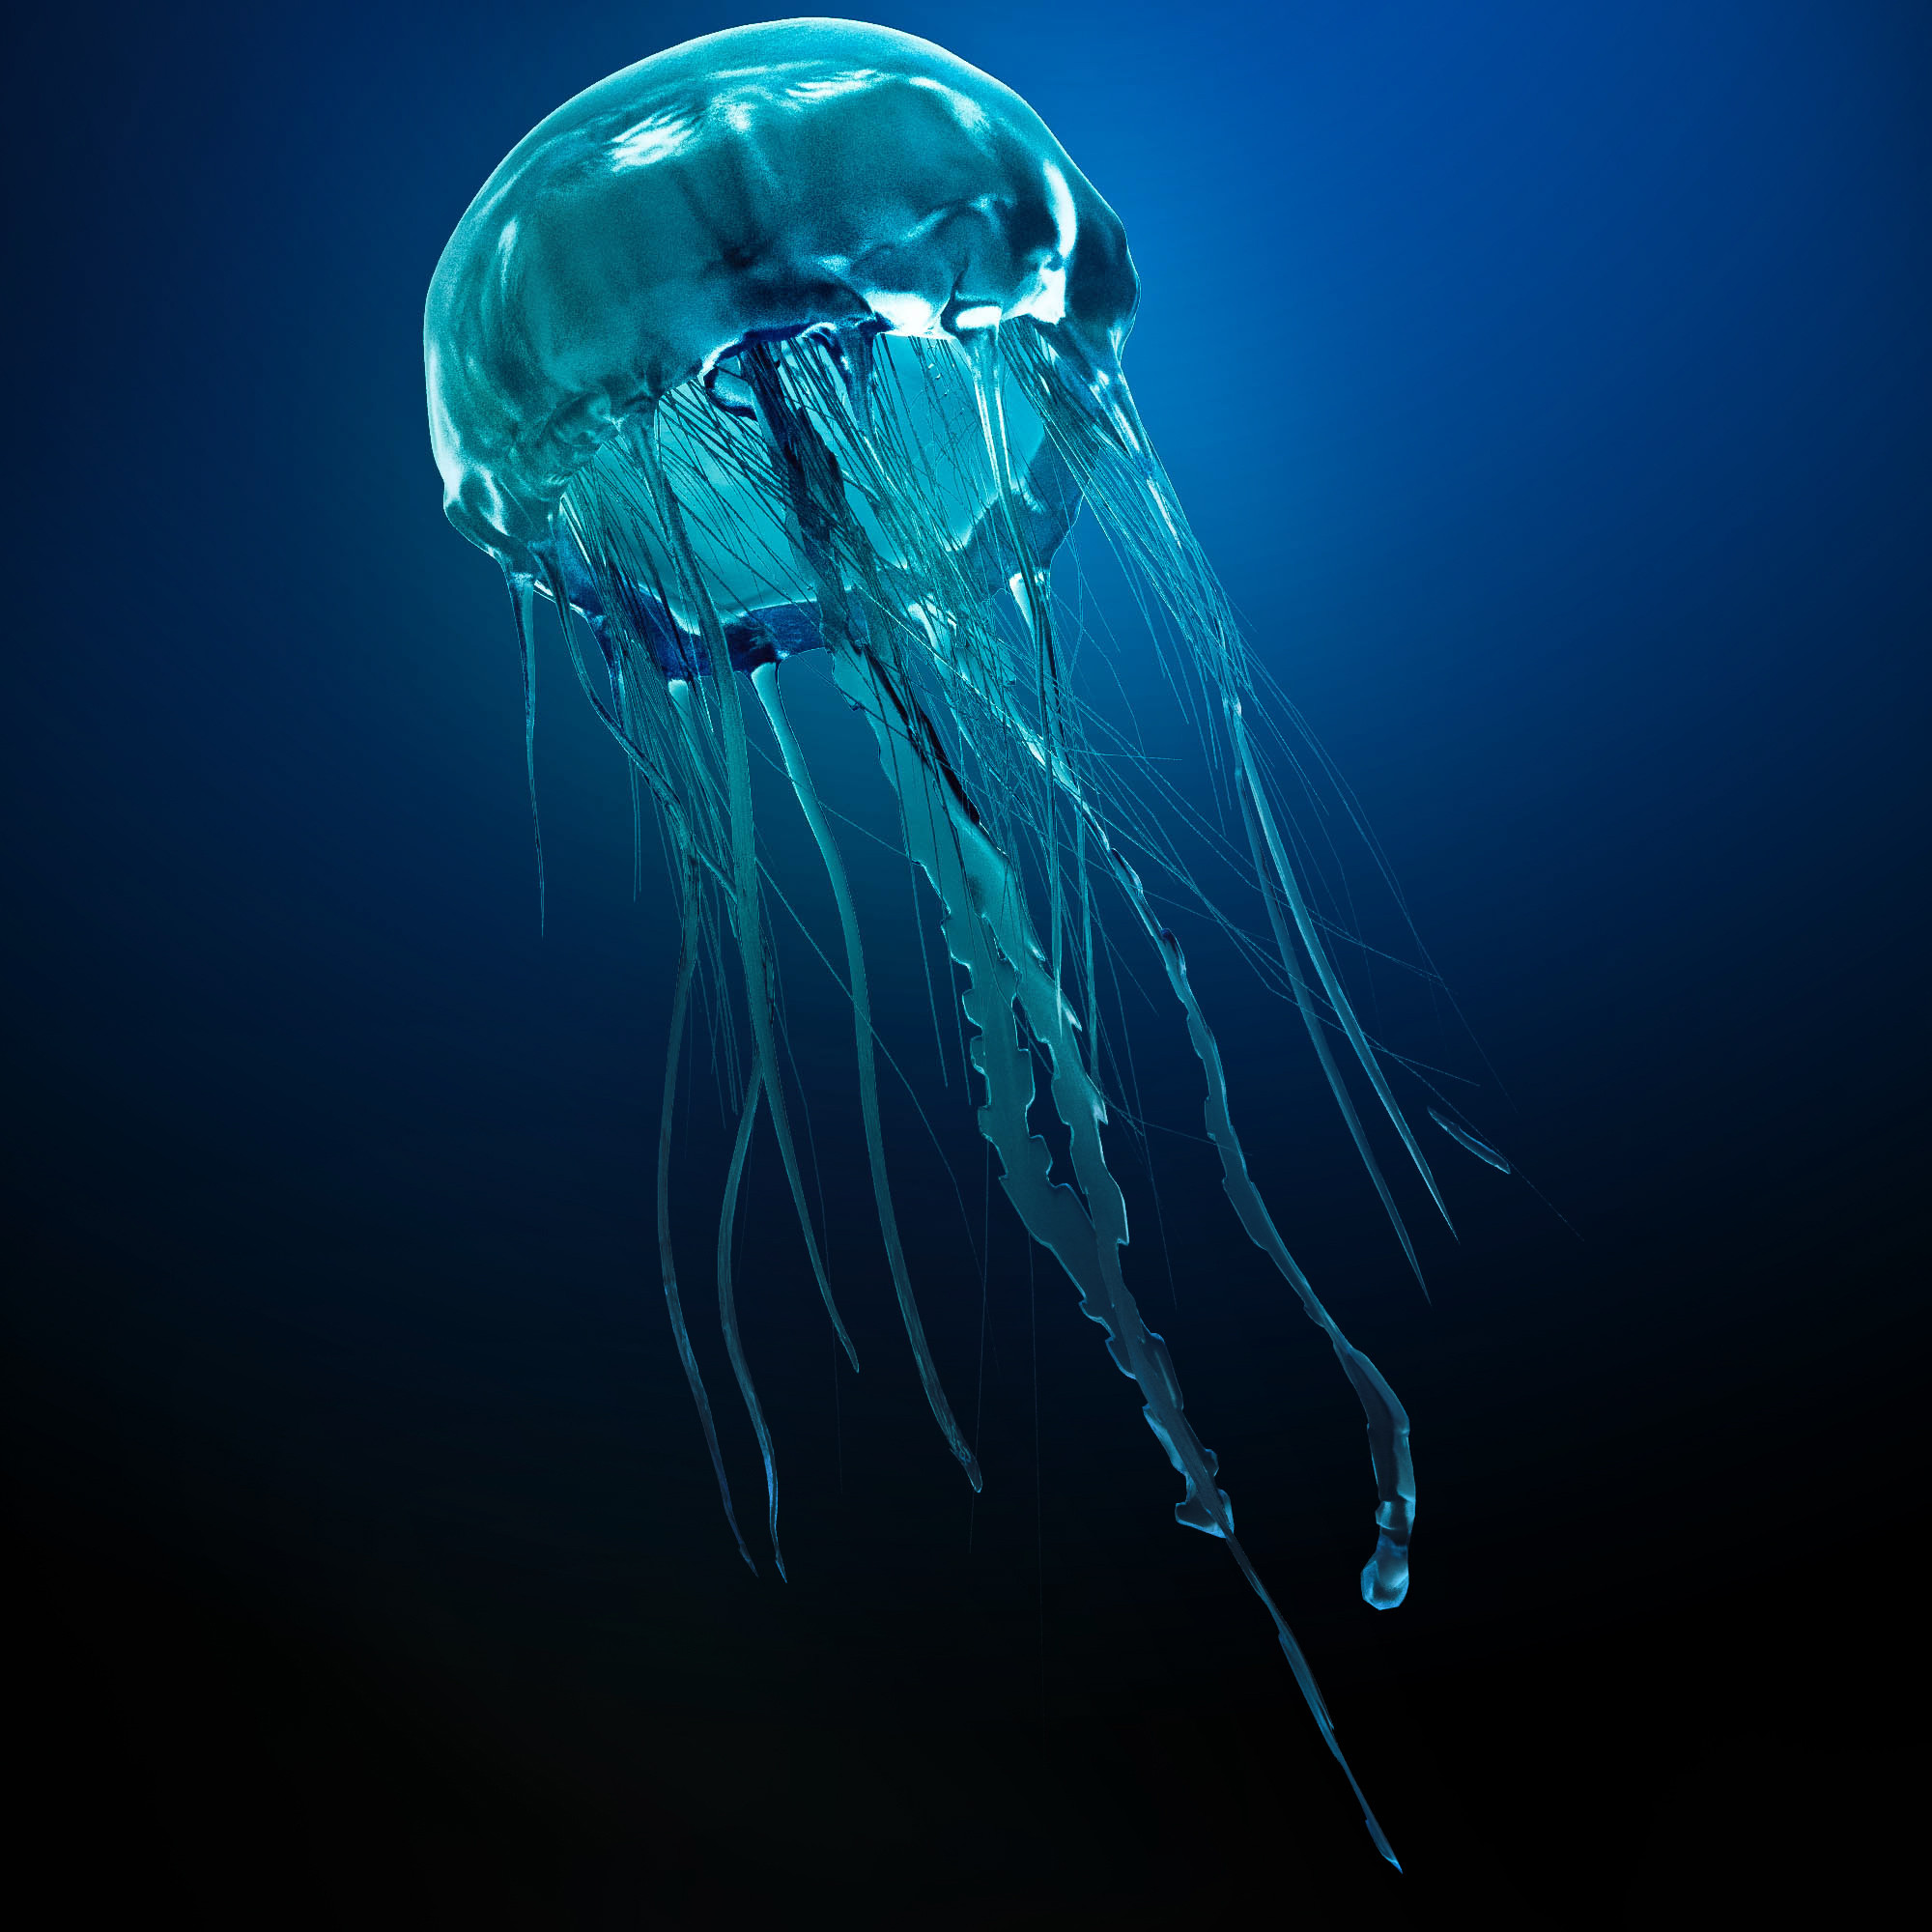 Jellyfish Backgrounds on Wallpapers Vista